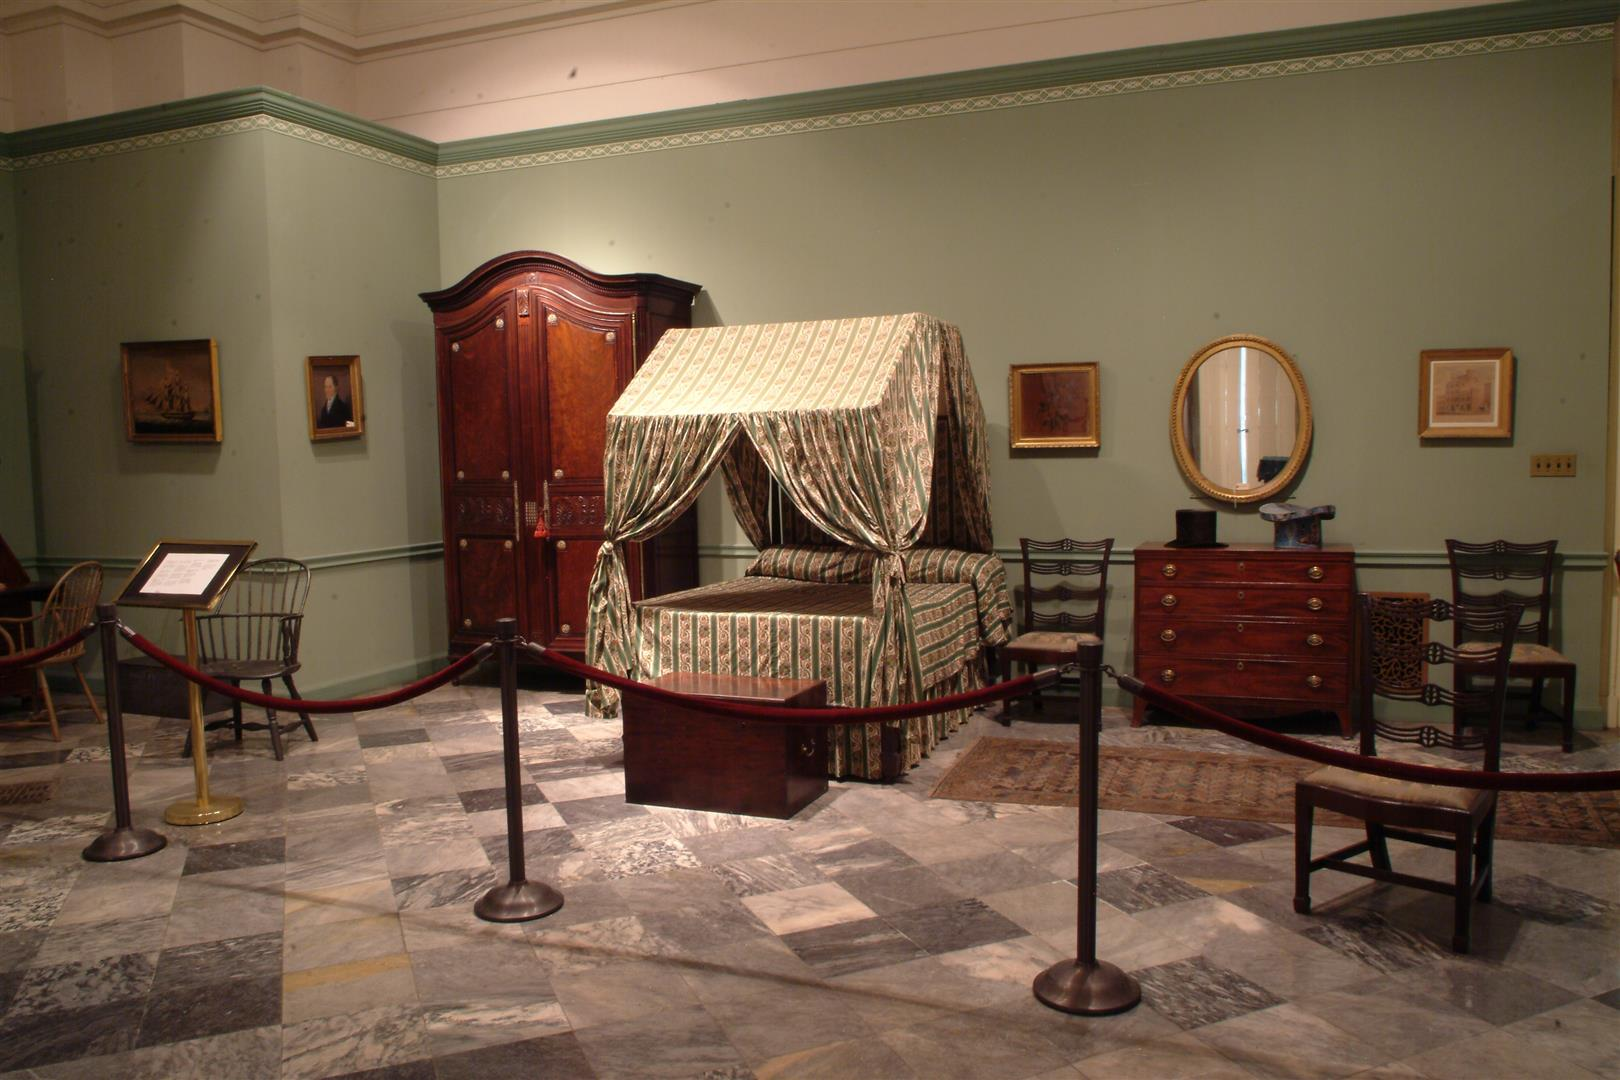 Bedroom furnishings from Girard's house, installed at Founder's Hall museum